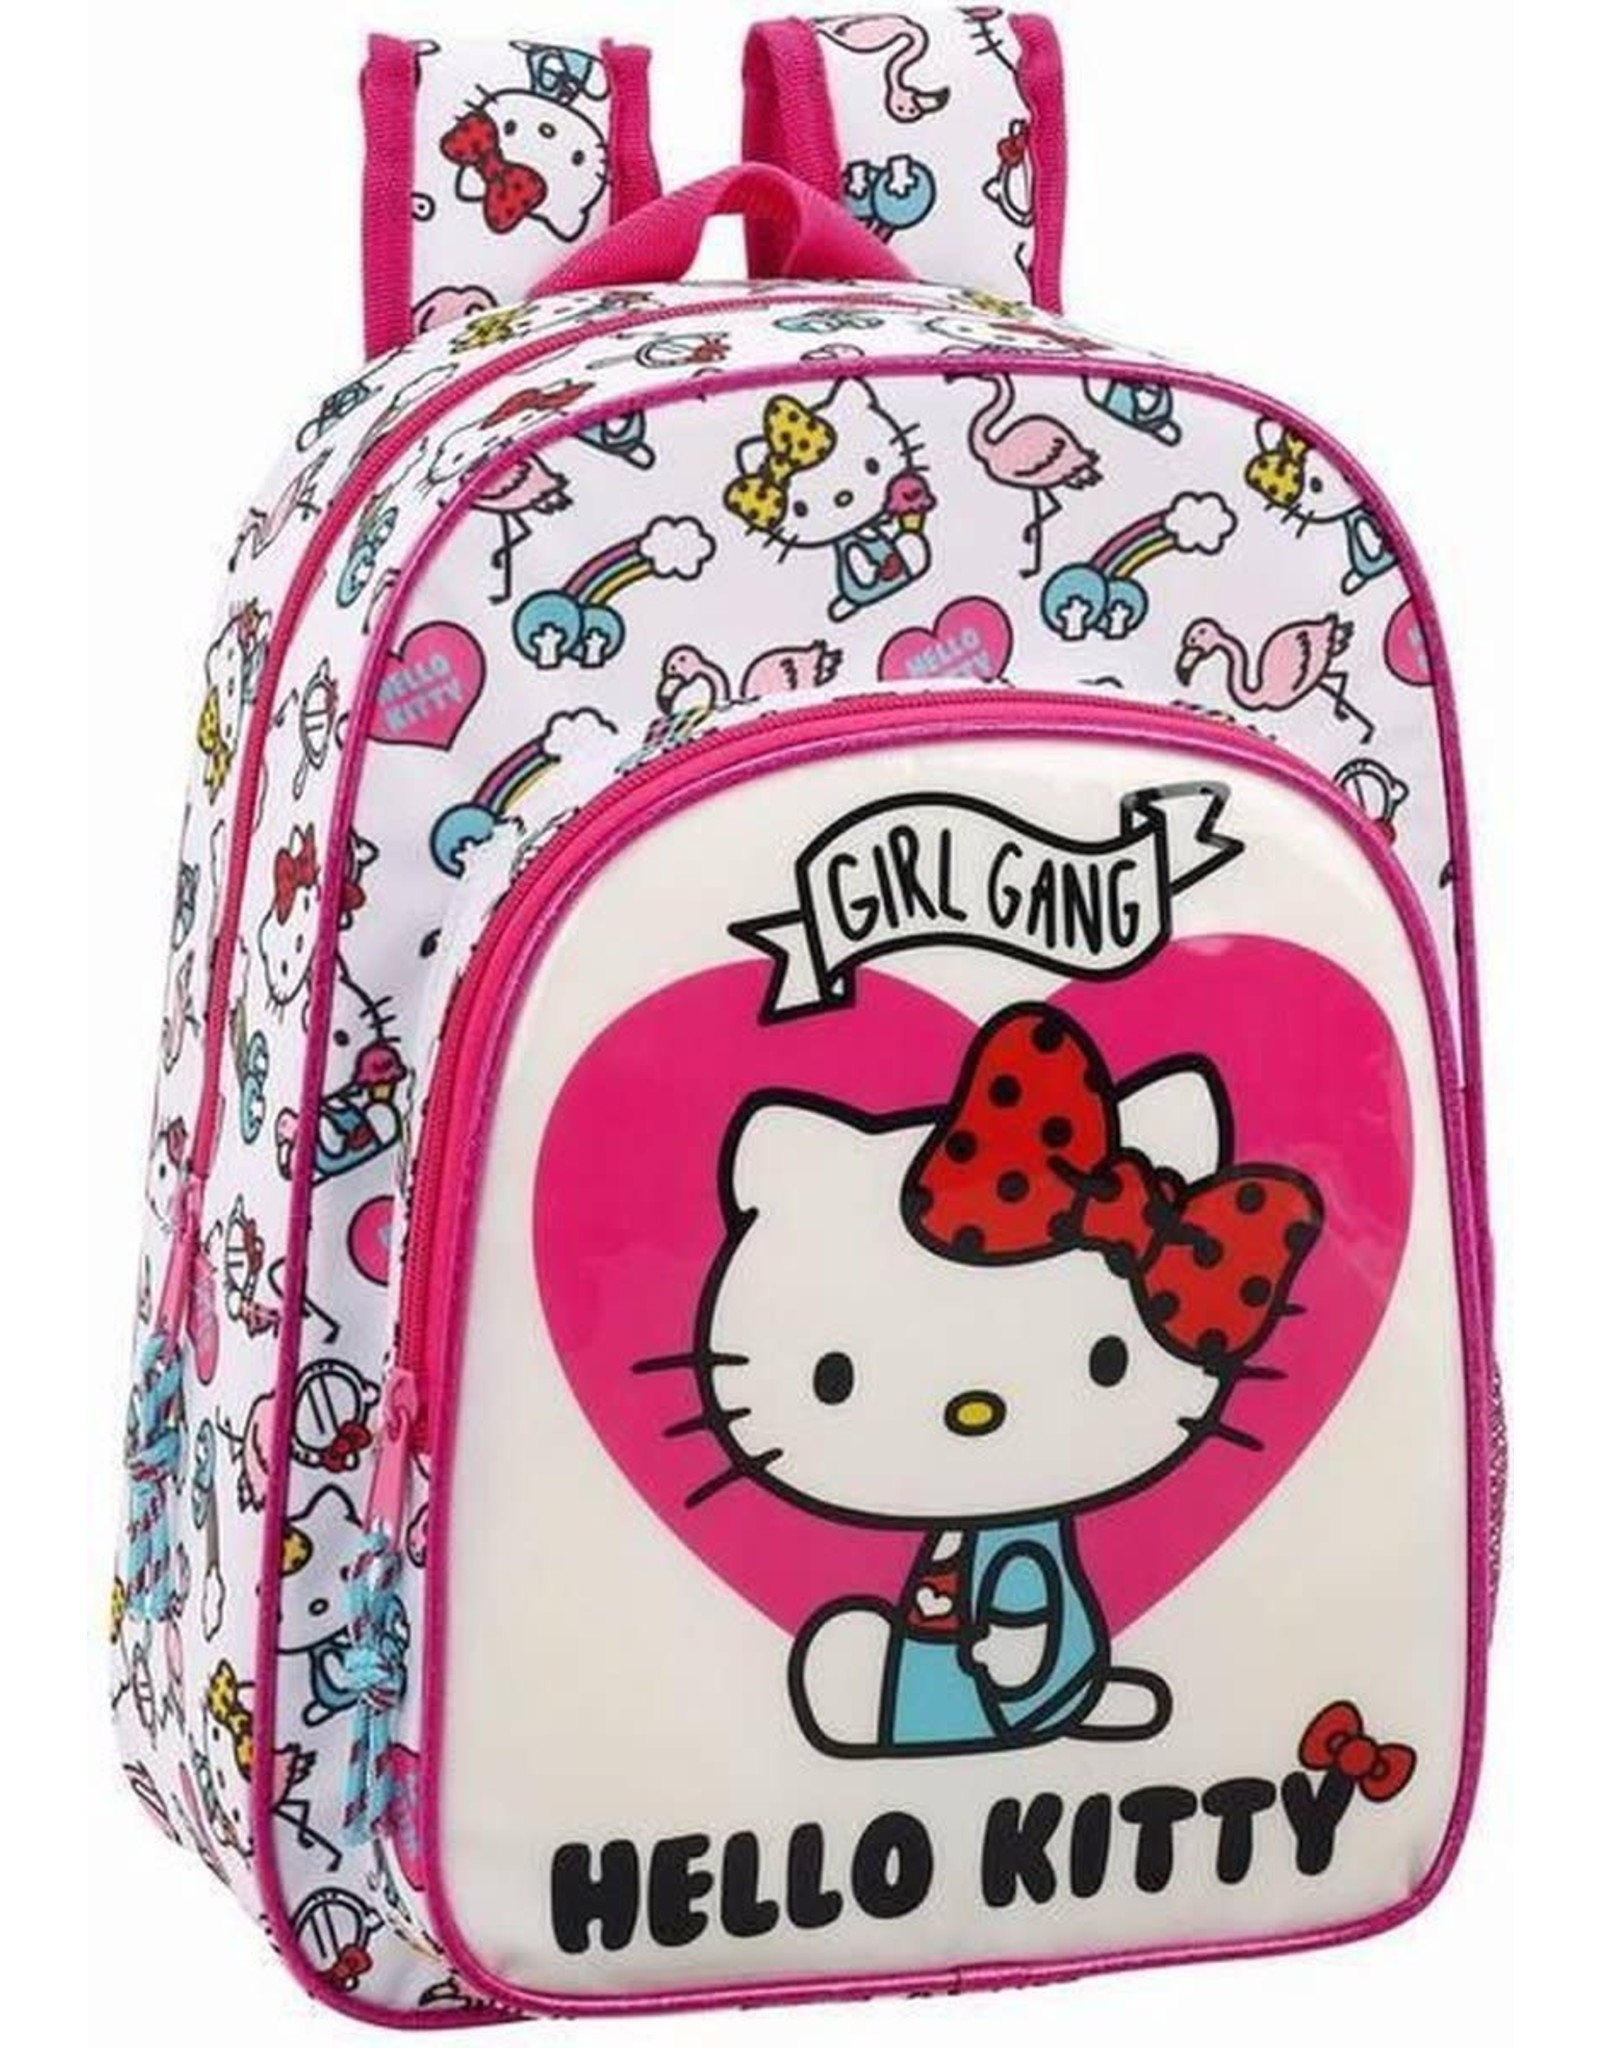 Hello Kitty Backpack Girl Gang 34 cm